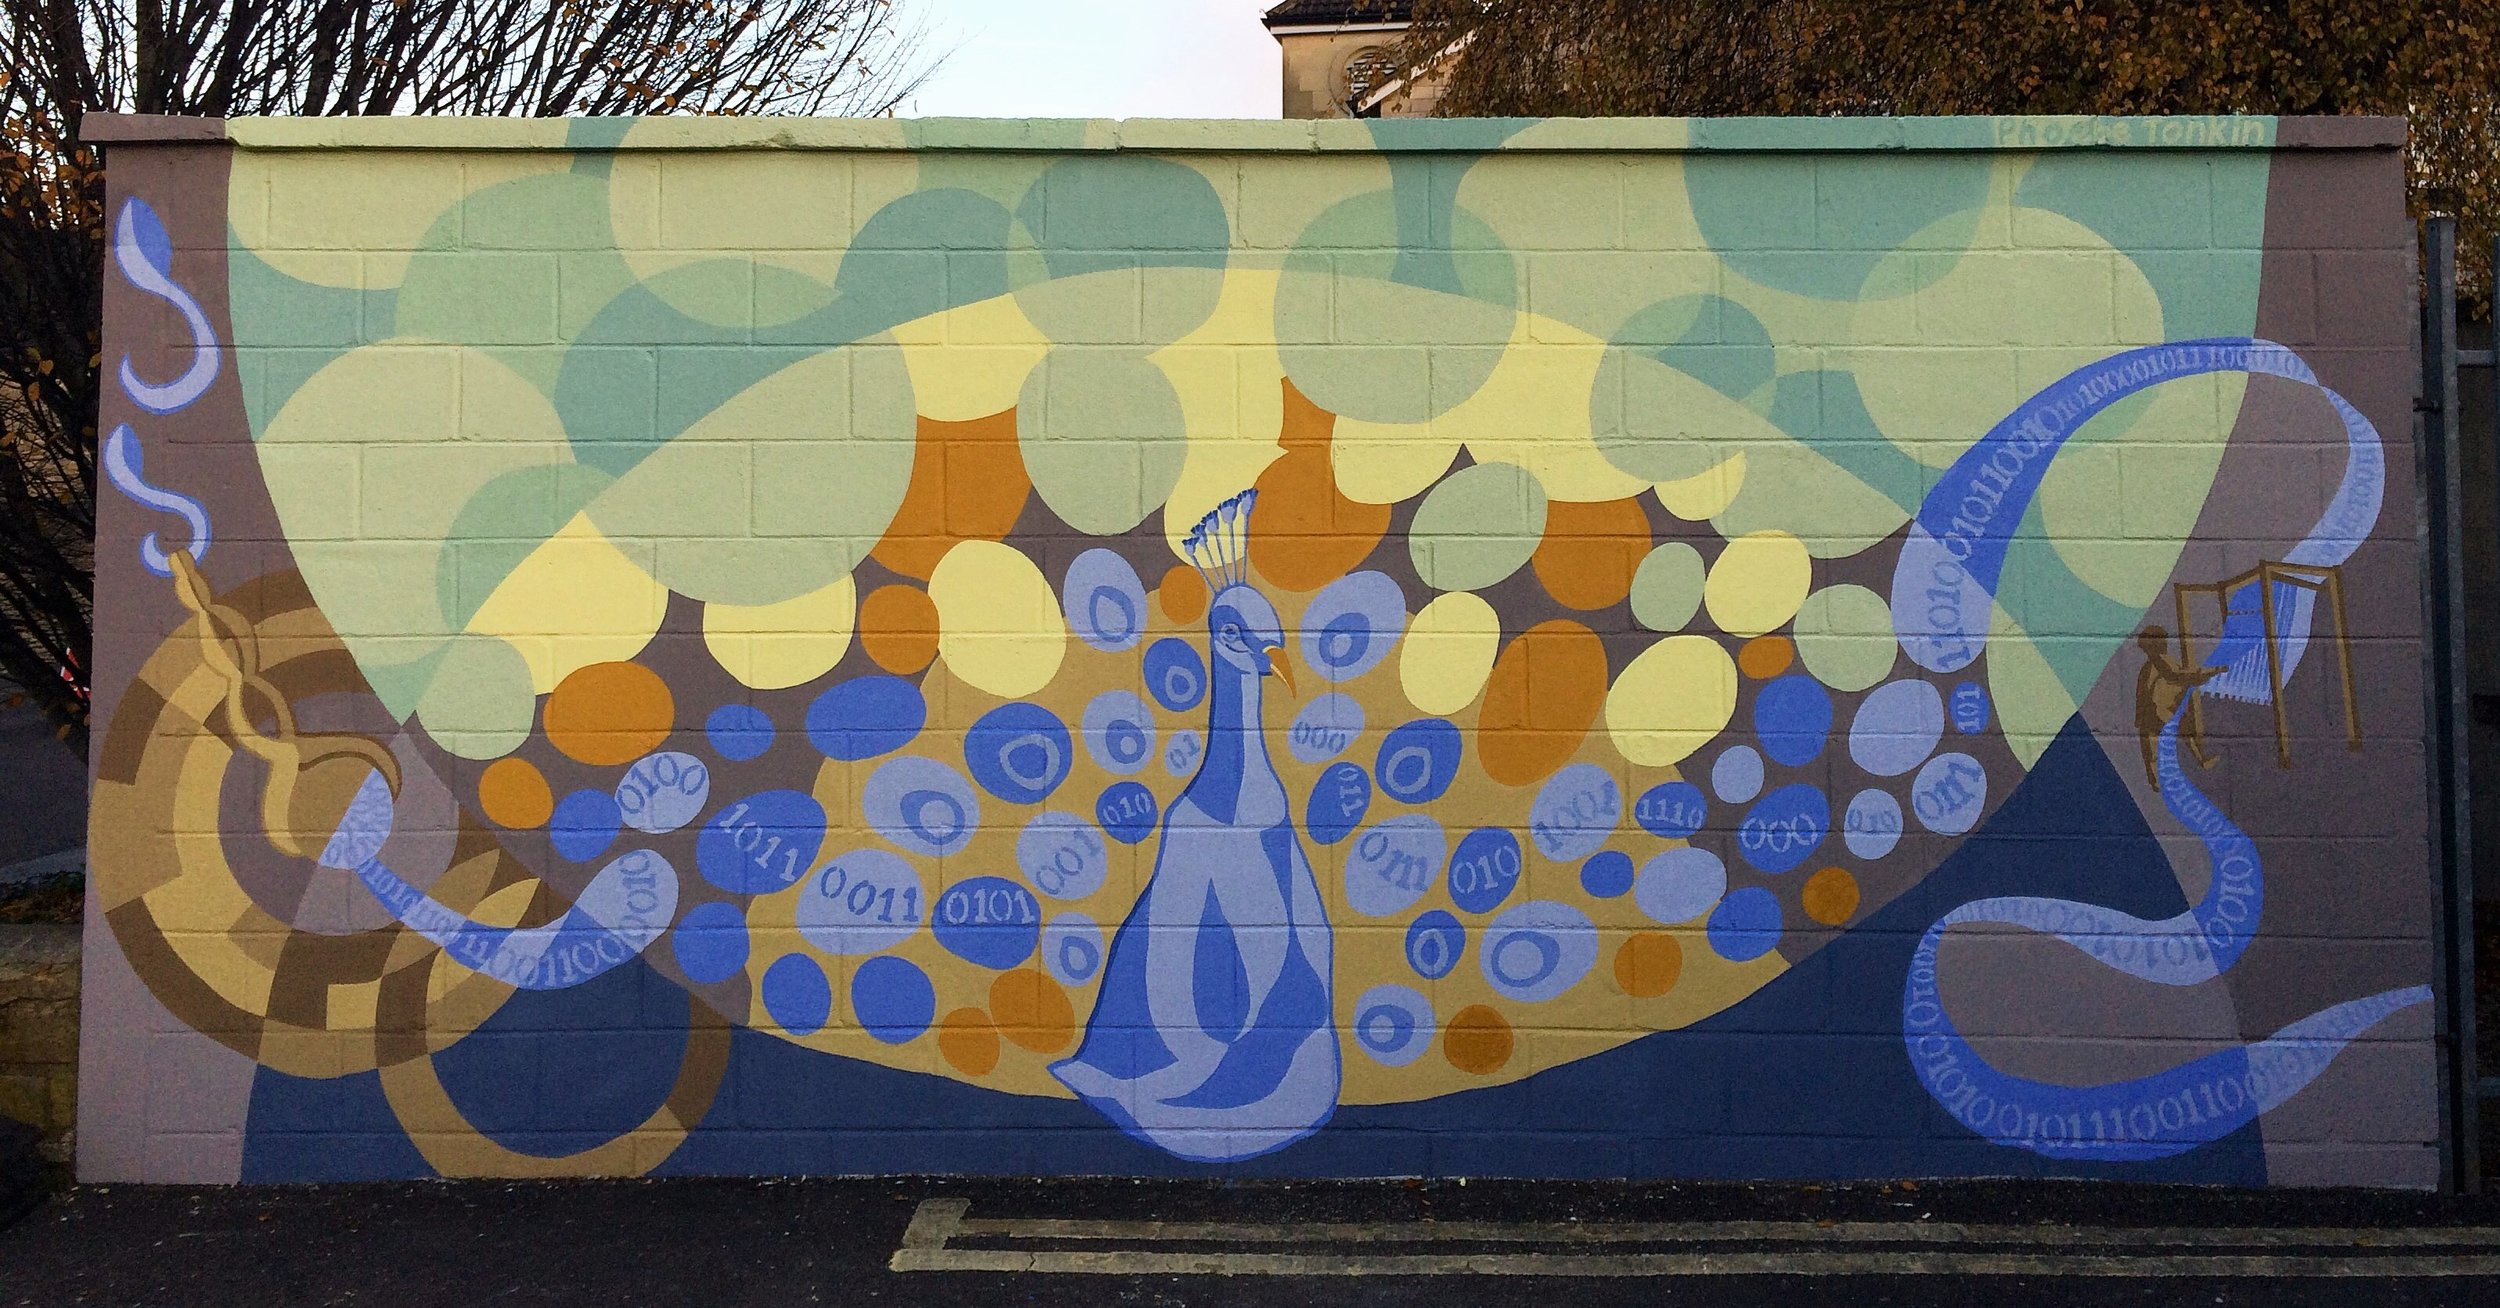 The finished mural - Martingate Centre, Corsham, Wiltshire